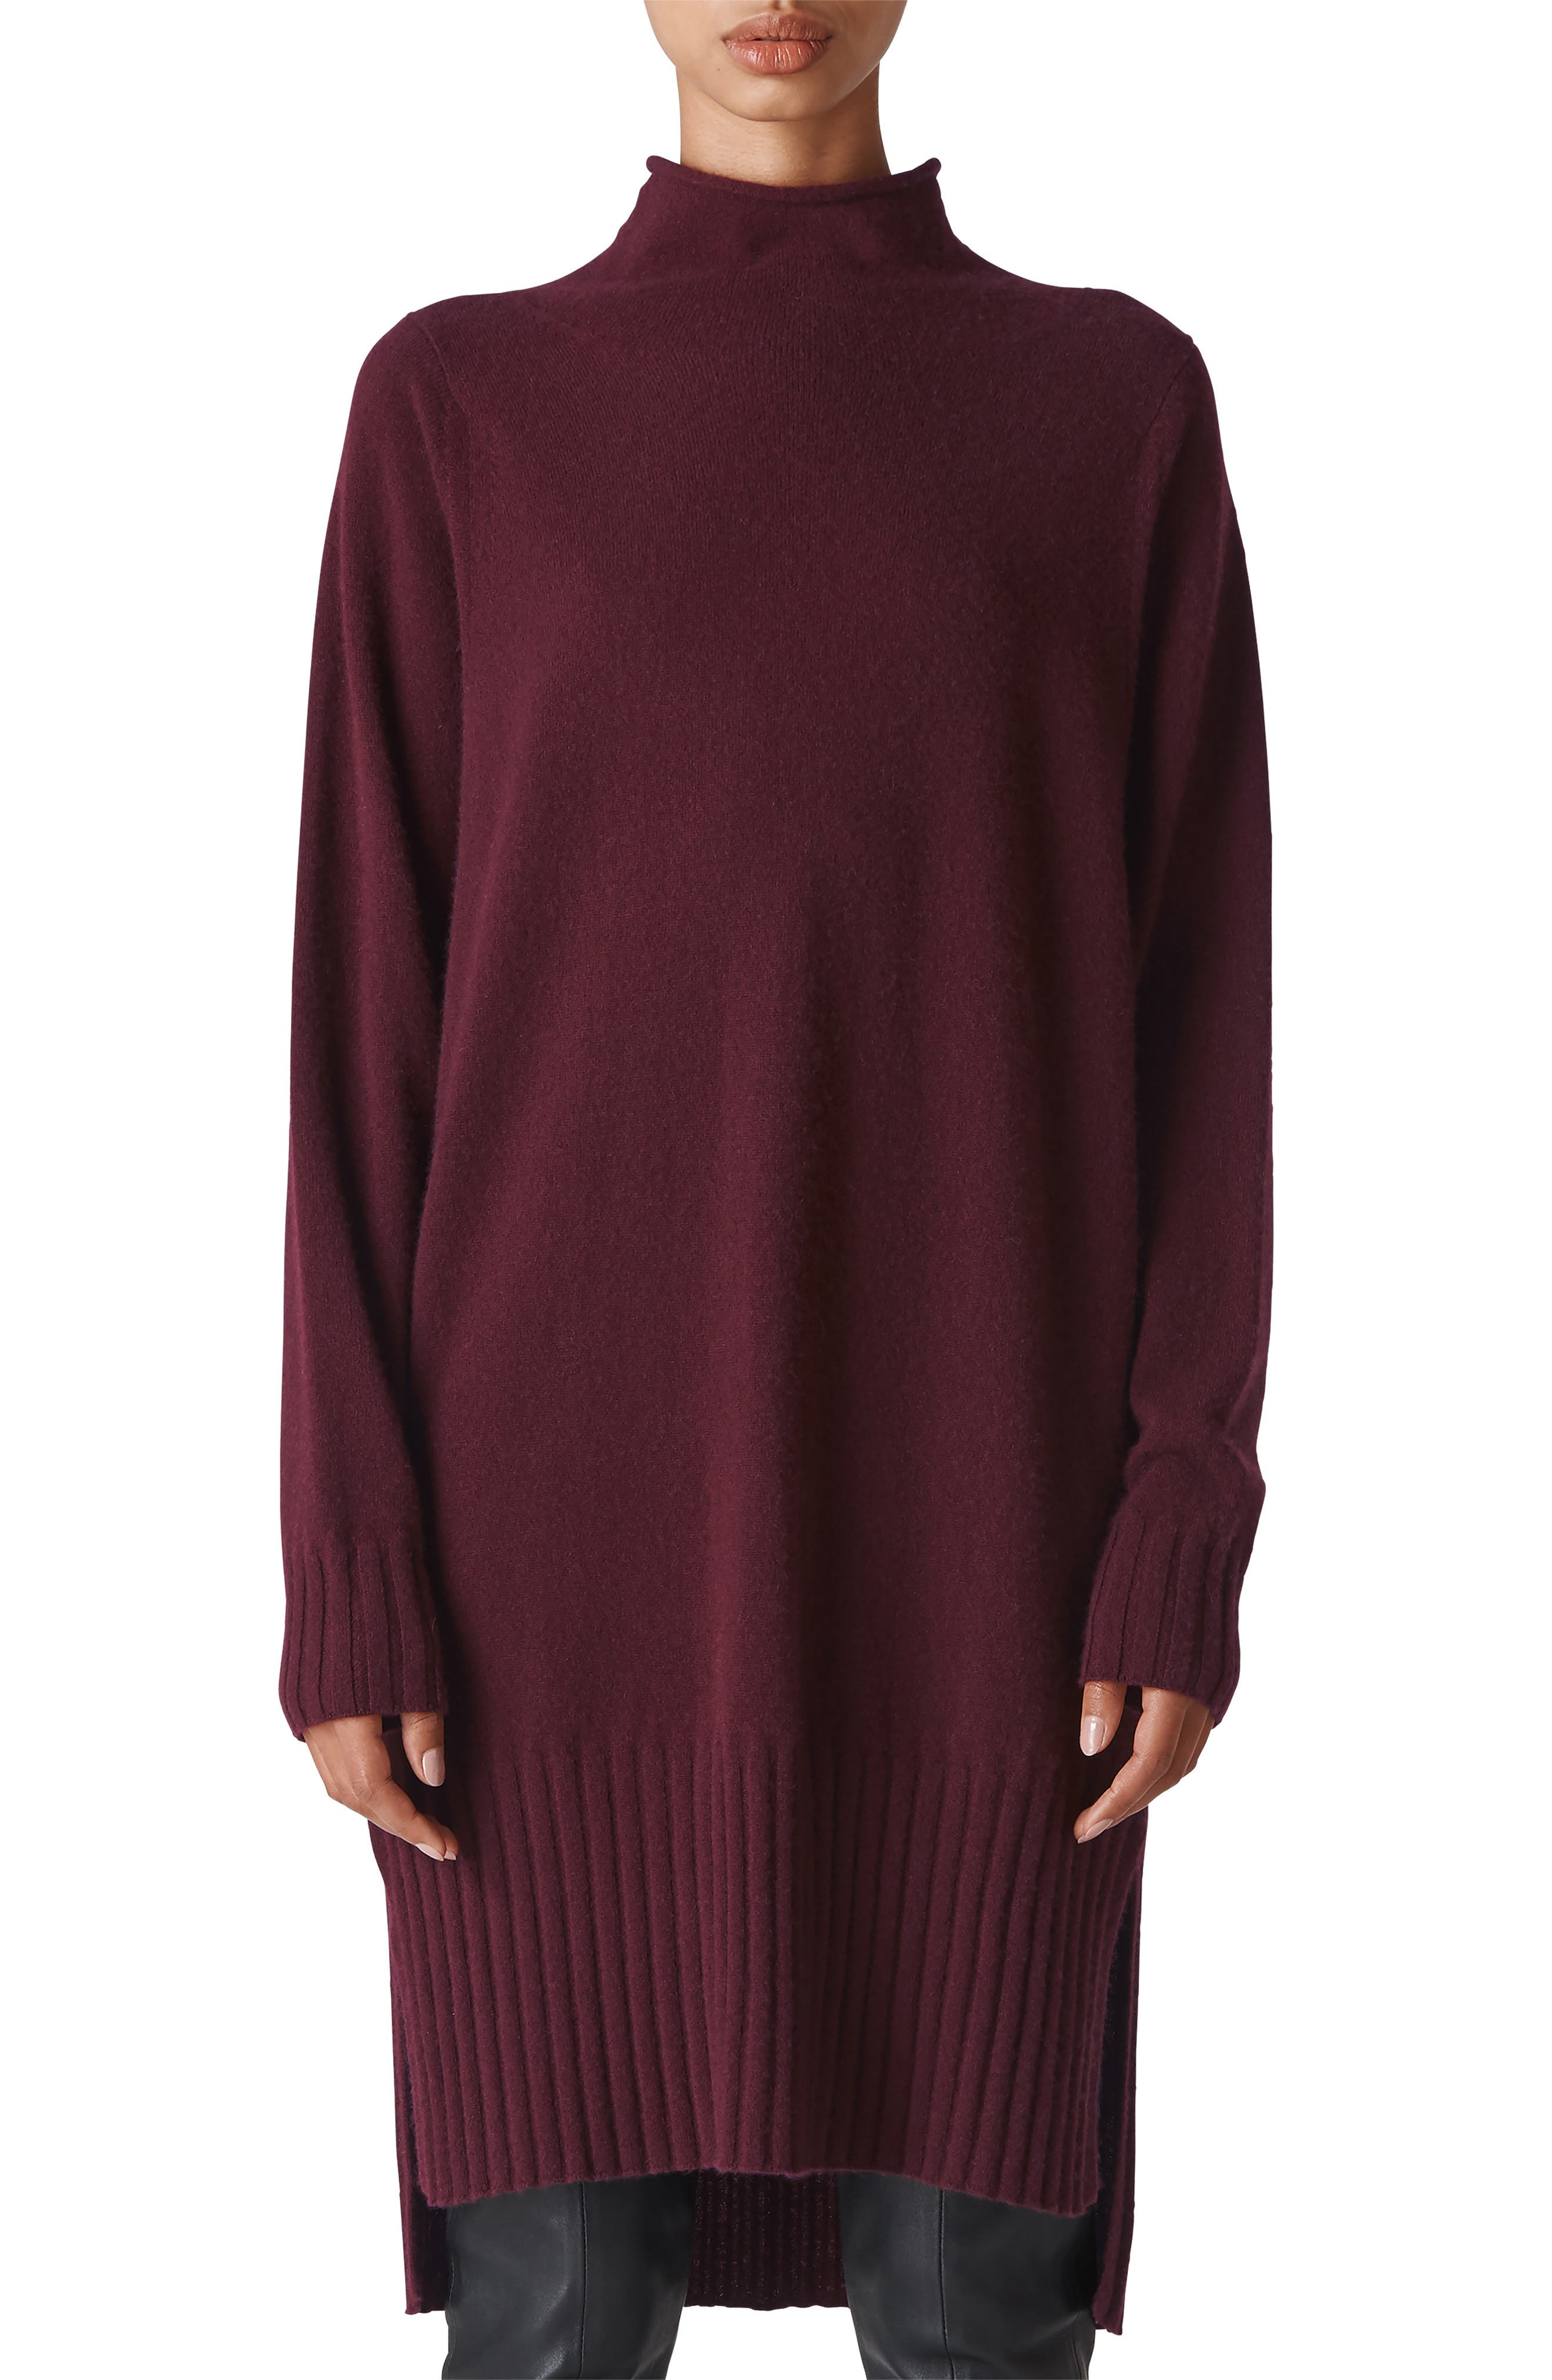 WHISTLES Dolman Cashmere Sweater Dress, Main, color, 930